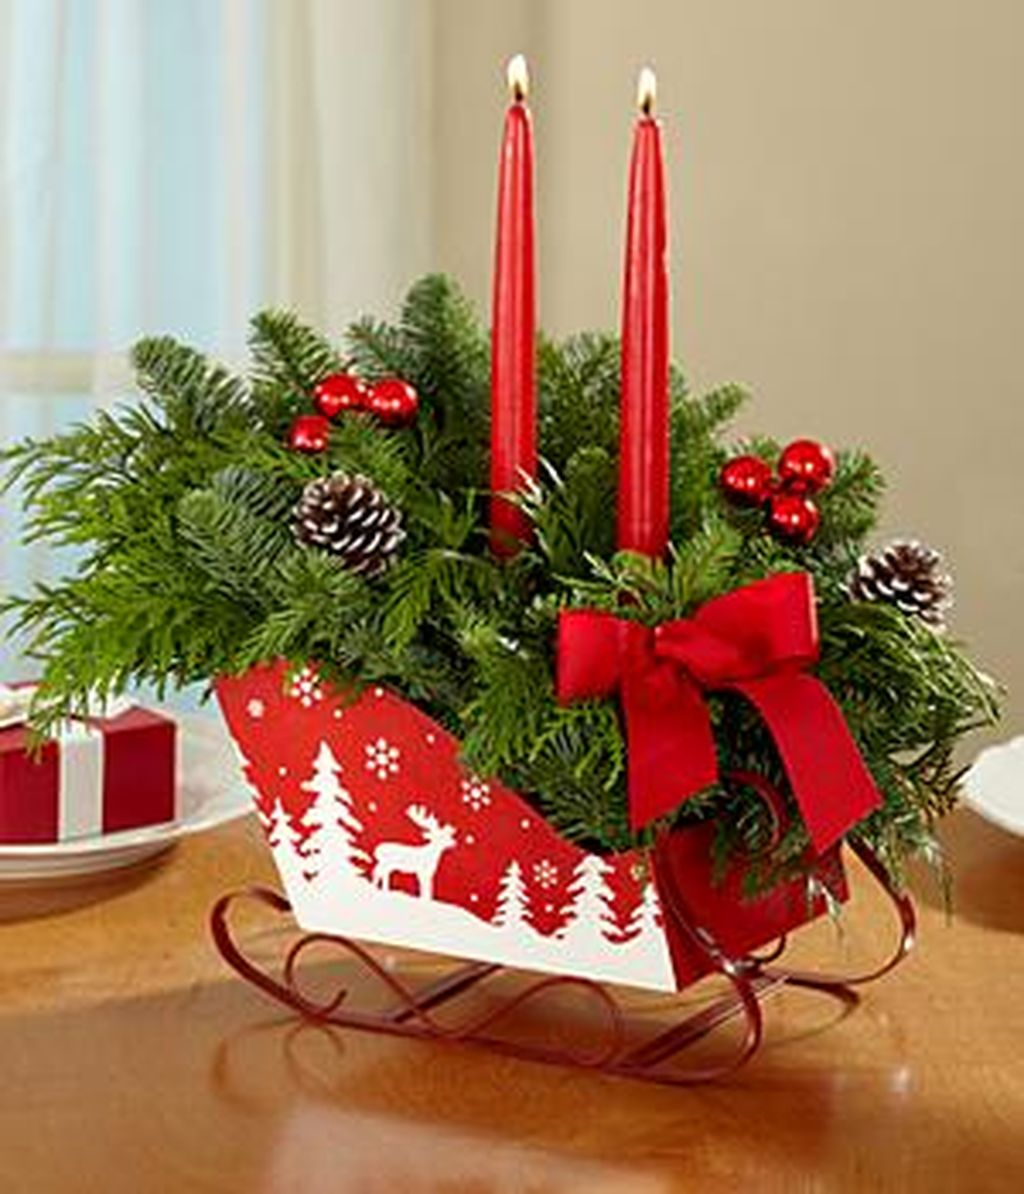 Inspiring Modern Rustic Christmas Centerpieces Ideas With Candles 13